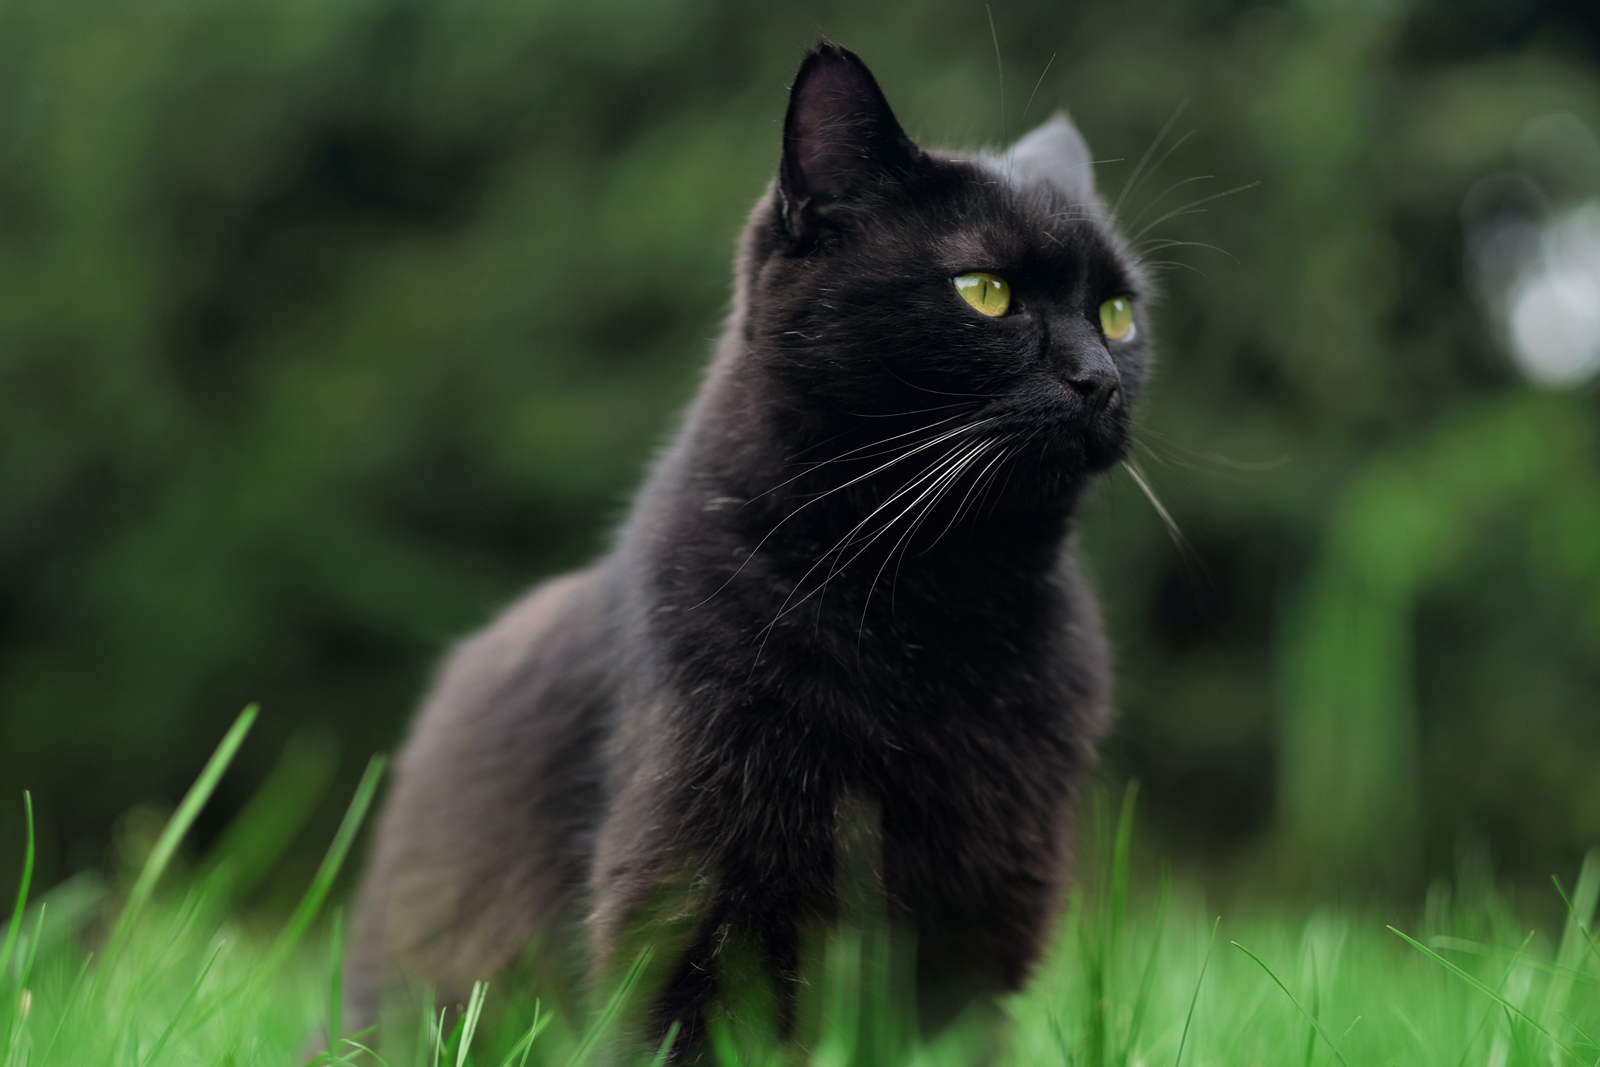 A black cat sitting on a patch of grass with trees in the background